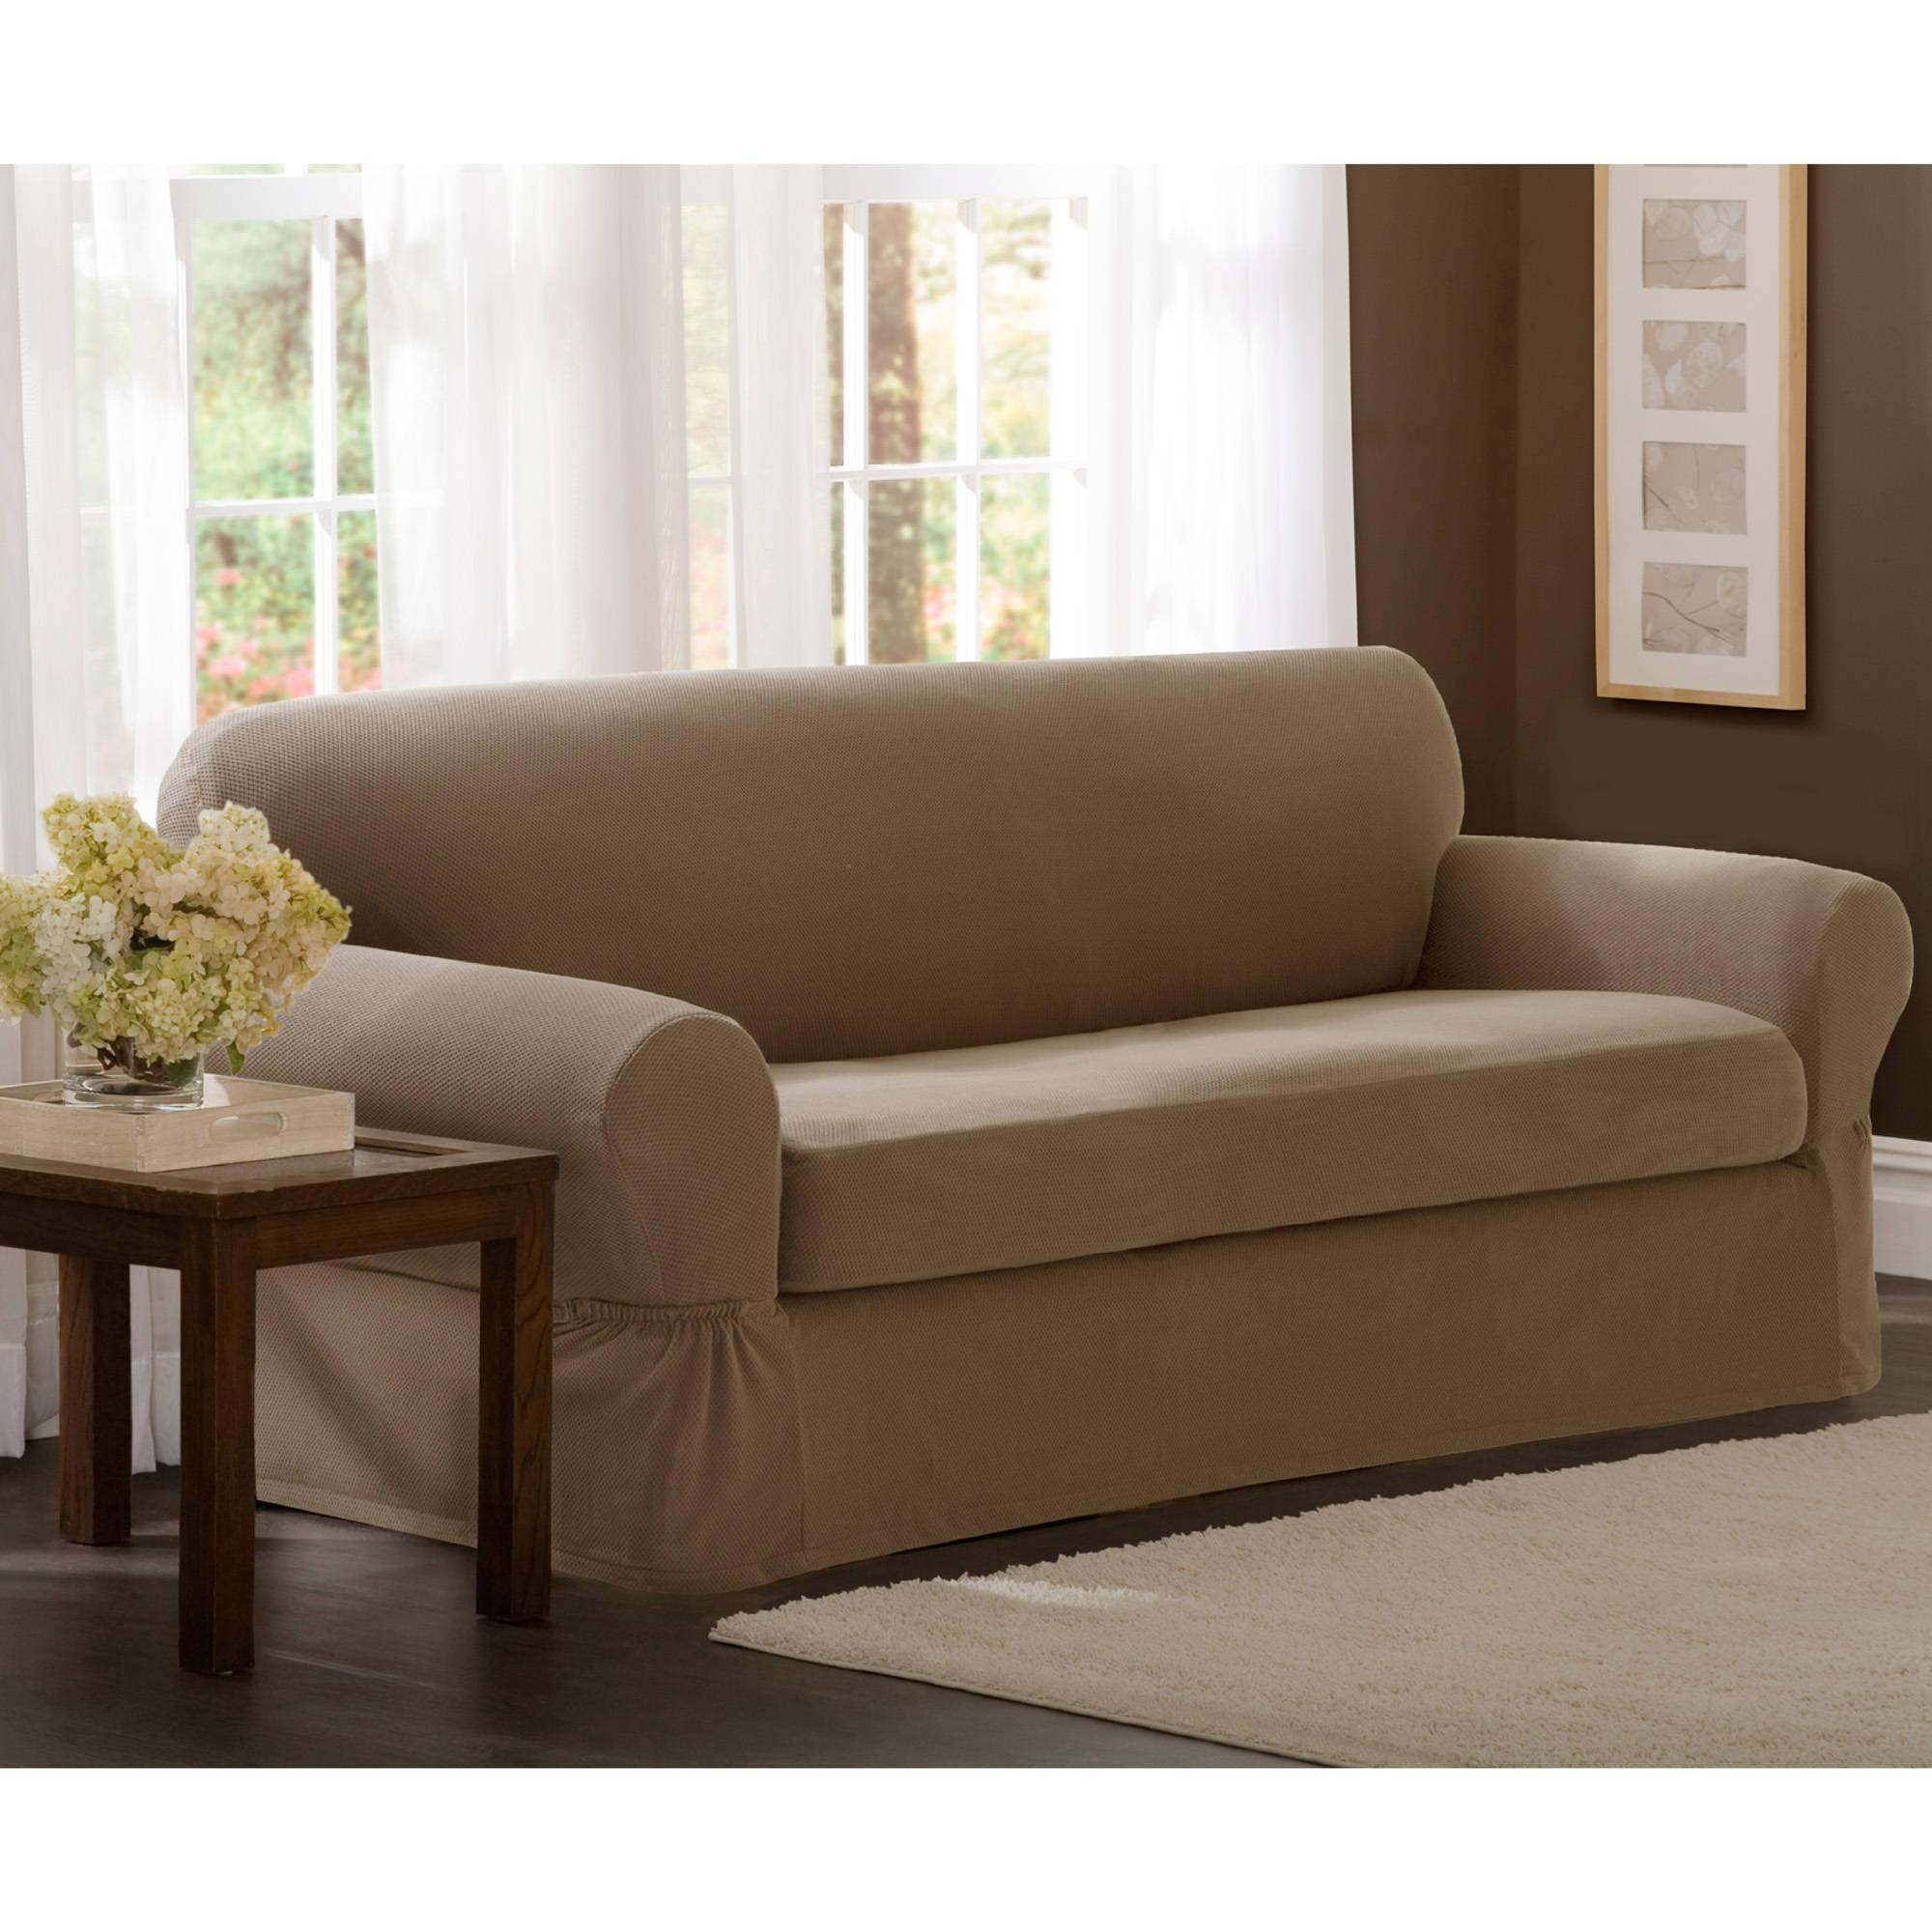 Maytex Stretch 2 Piece Sofa Slipcover – Walmart With Regard To Canvas Sofa Slipcovers (Image 13 of 20)